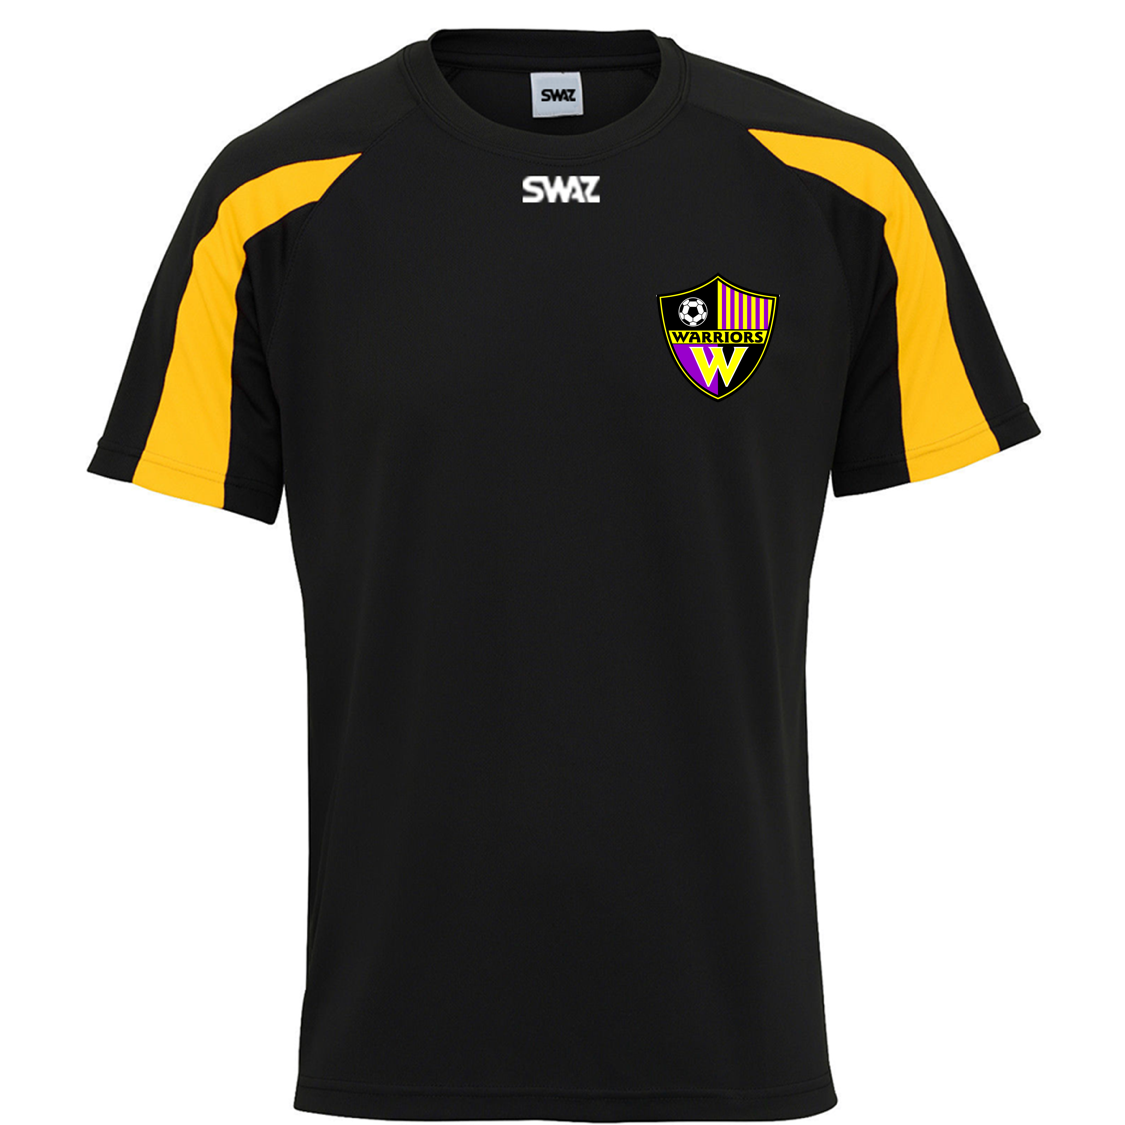 new style 5a7d2 0c418 SWAZ Plymouth Warriors Adult Premier Training T-Shirt - Black/Amber